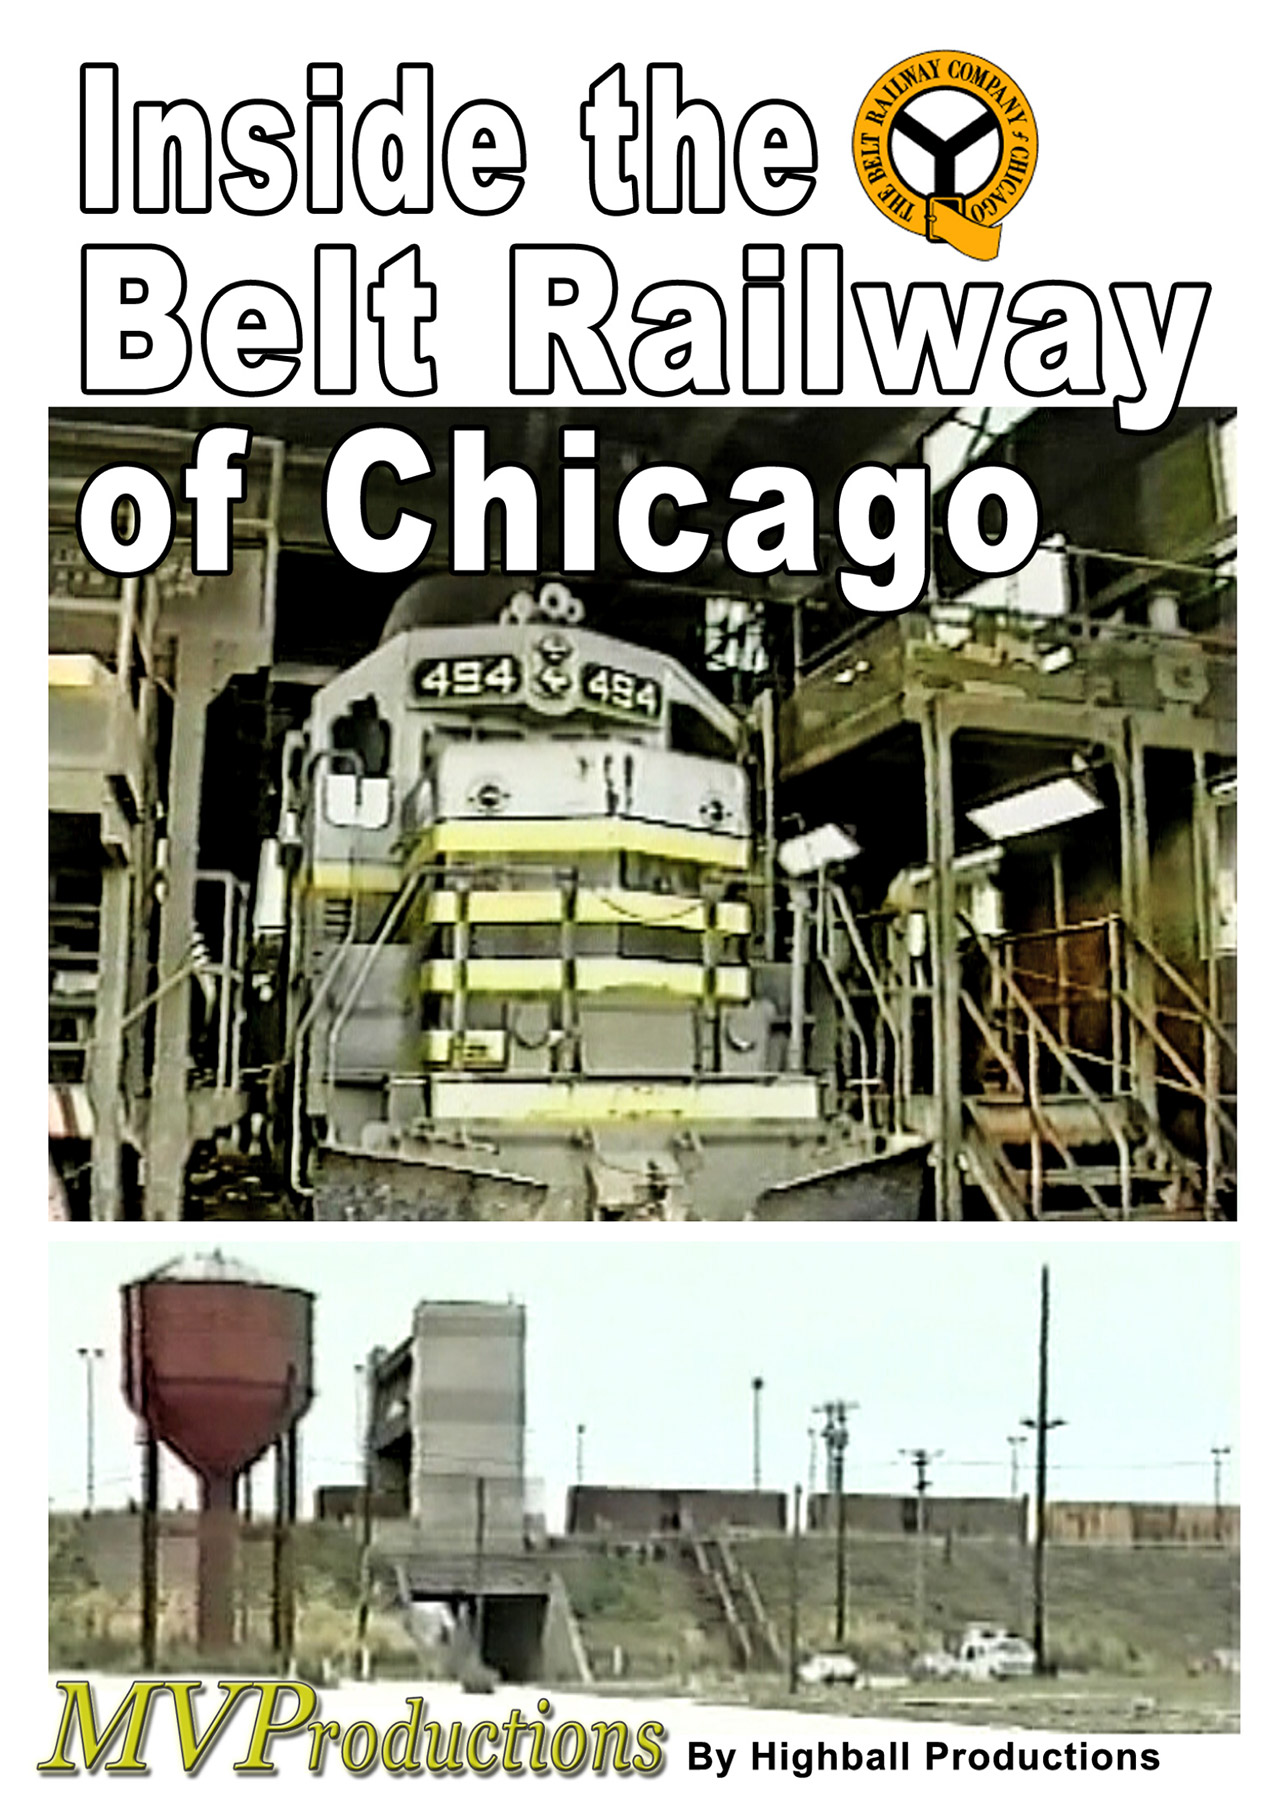 Inside the Belt Railway of Chicago Train Video Midwest Video Productions MVIBRC 601577879947